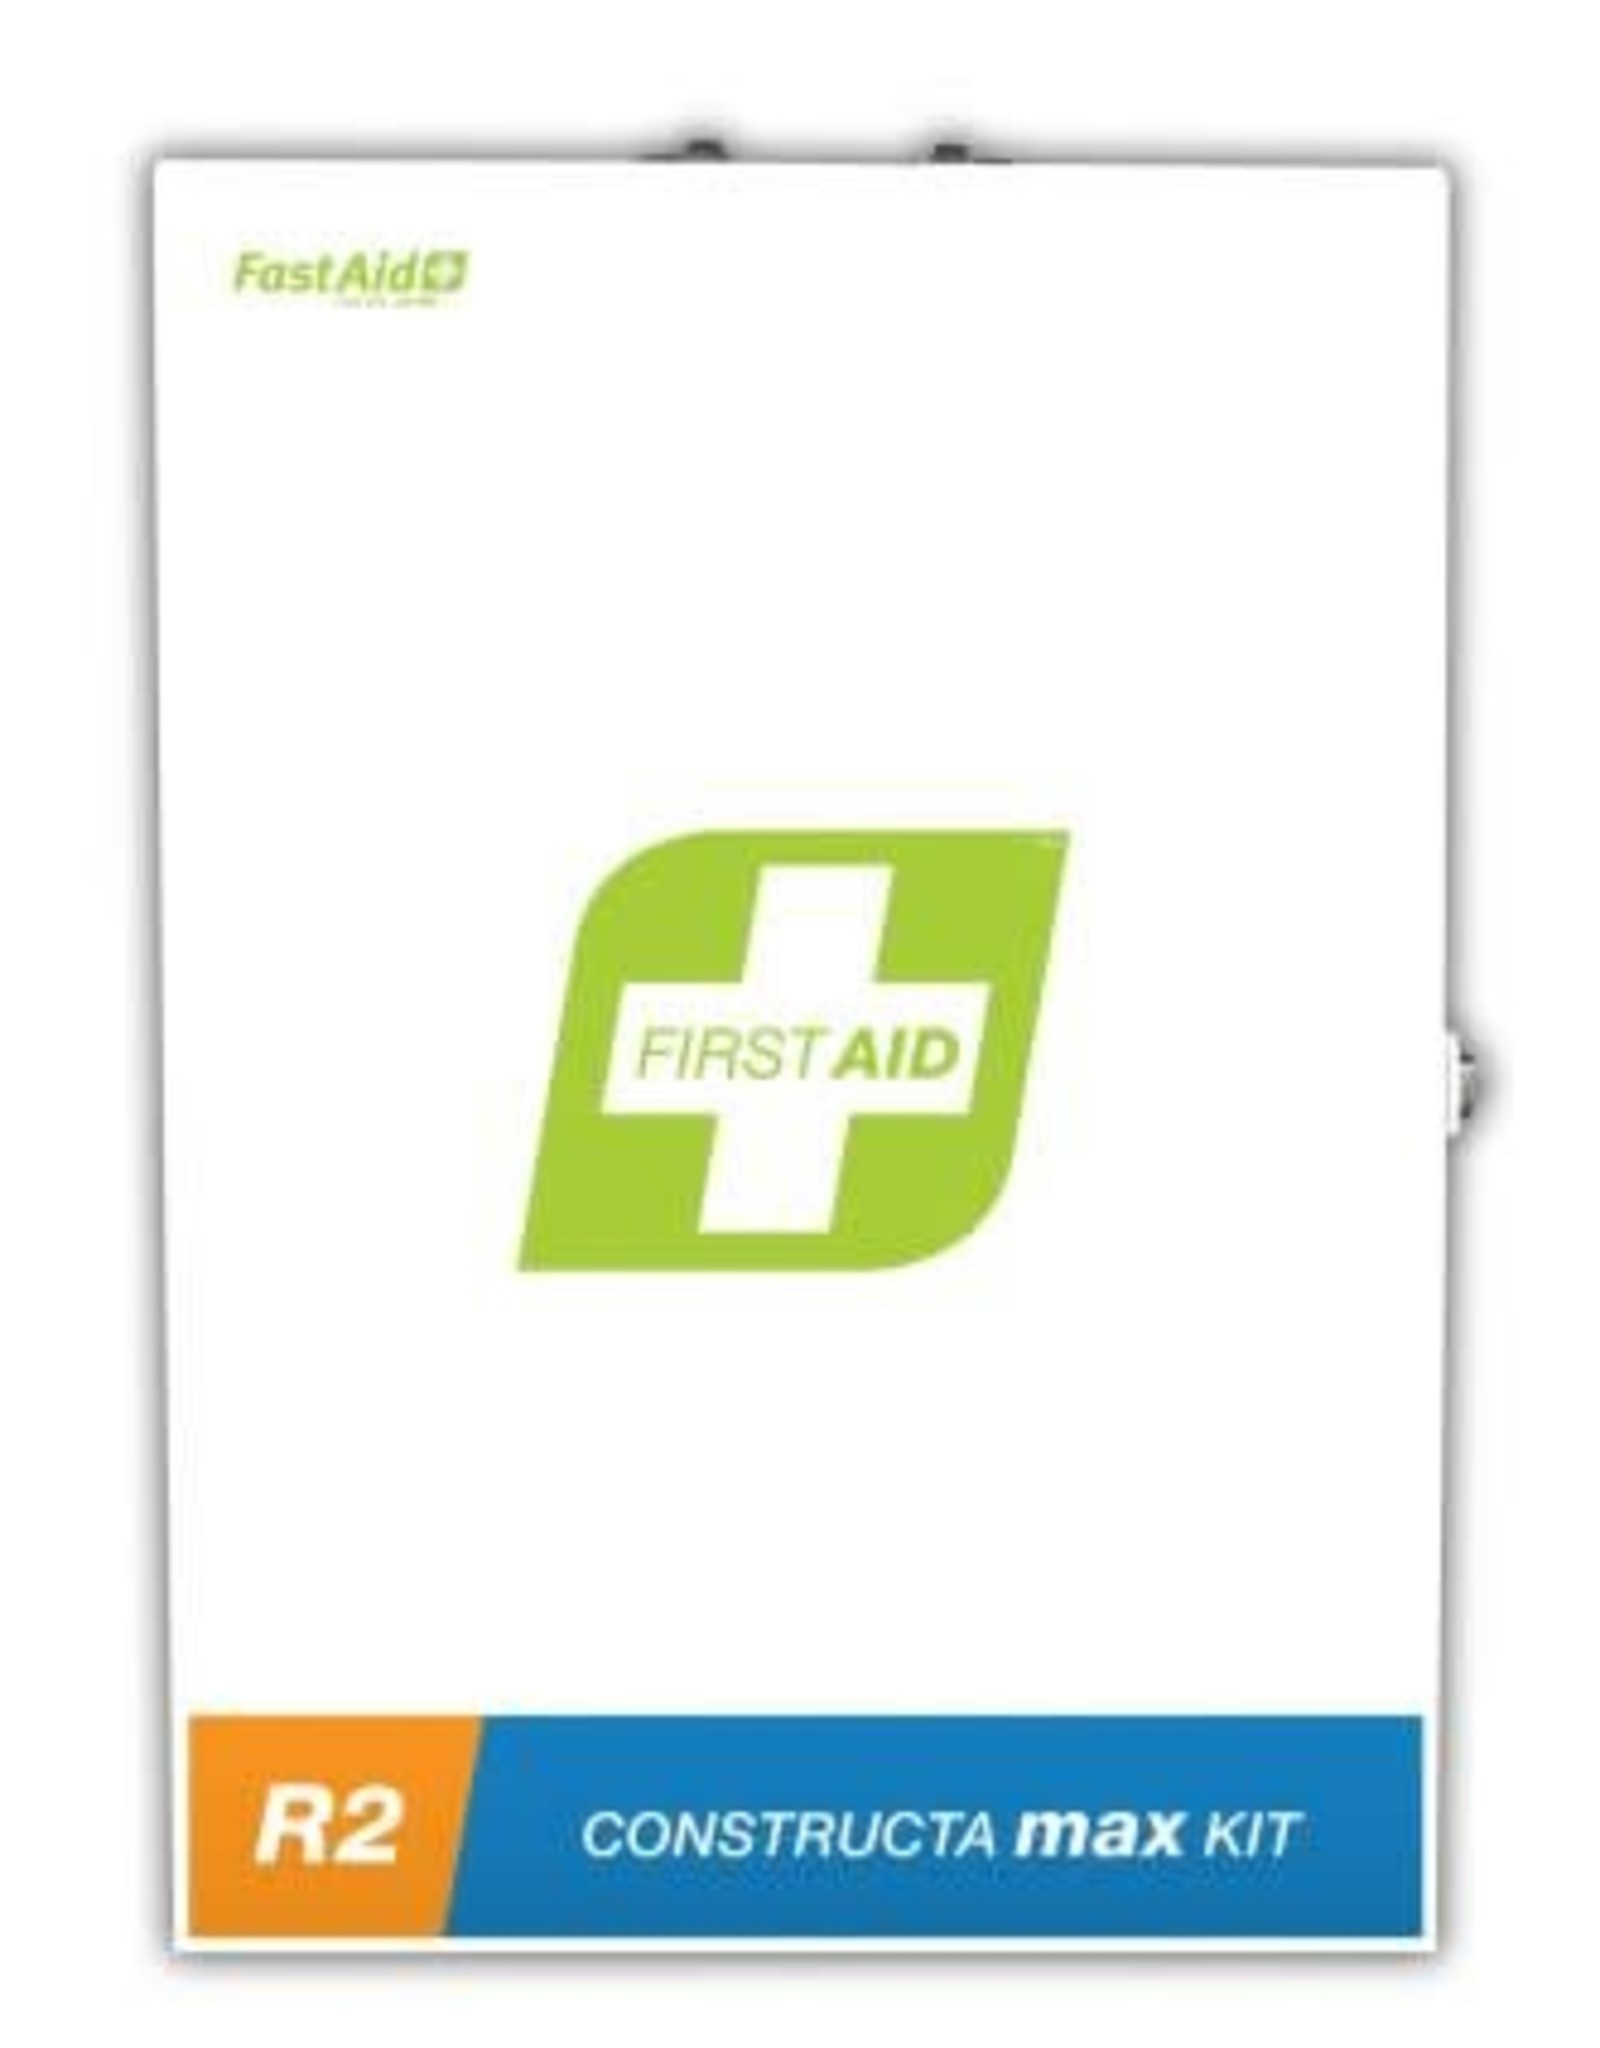 FastAid FastAid R2 Construction Max First Aid Kit (Metal Wall Mount)